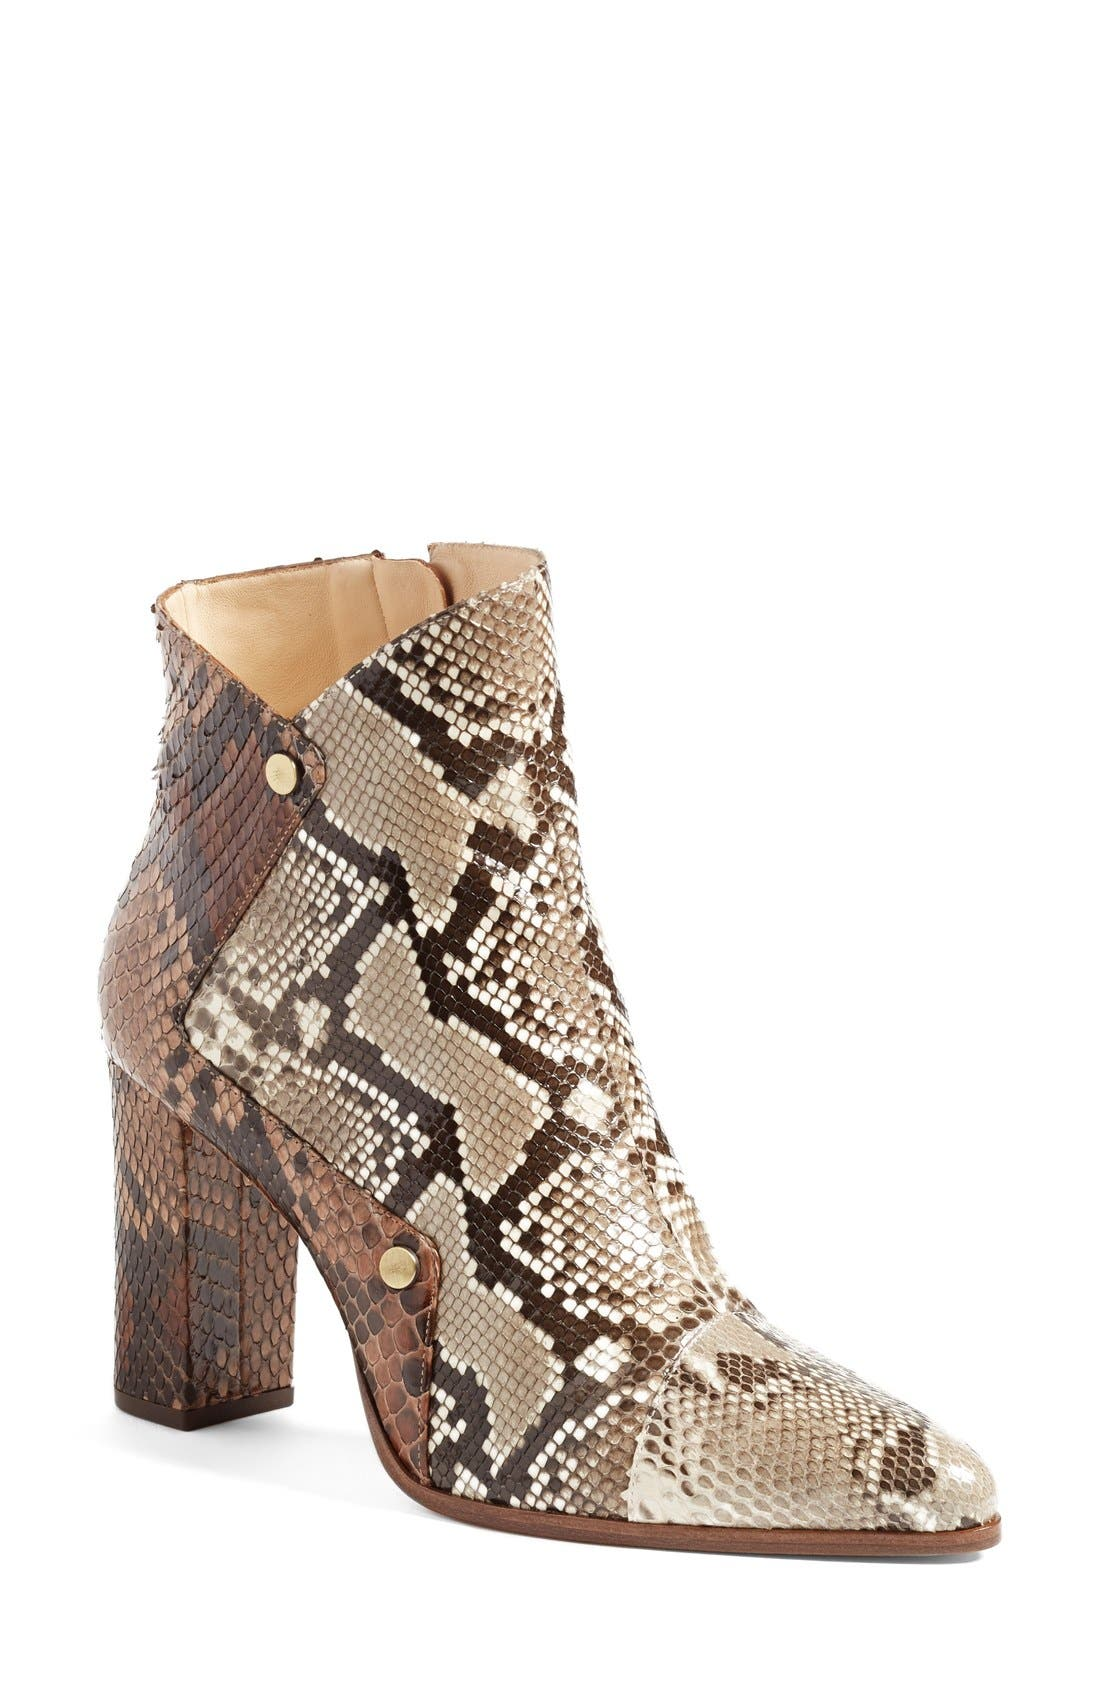 'Kendal' Genuine Python Skin Pointy Toe Bootie,                             Main thumbnail 1, color,                             250